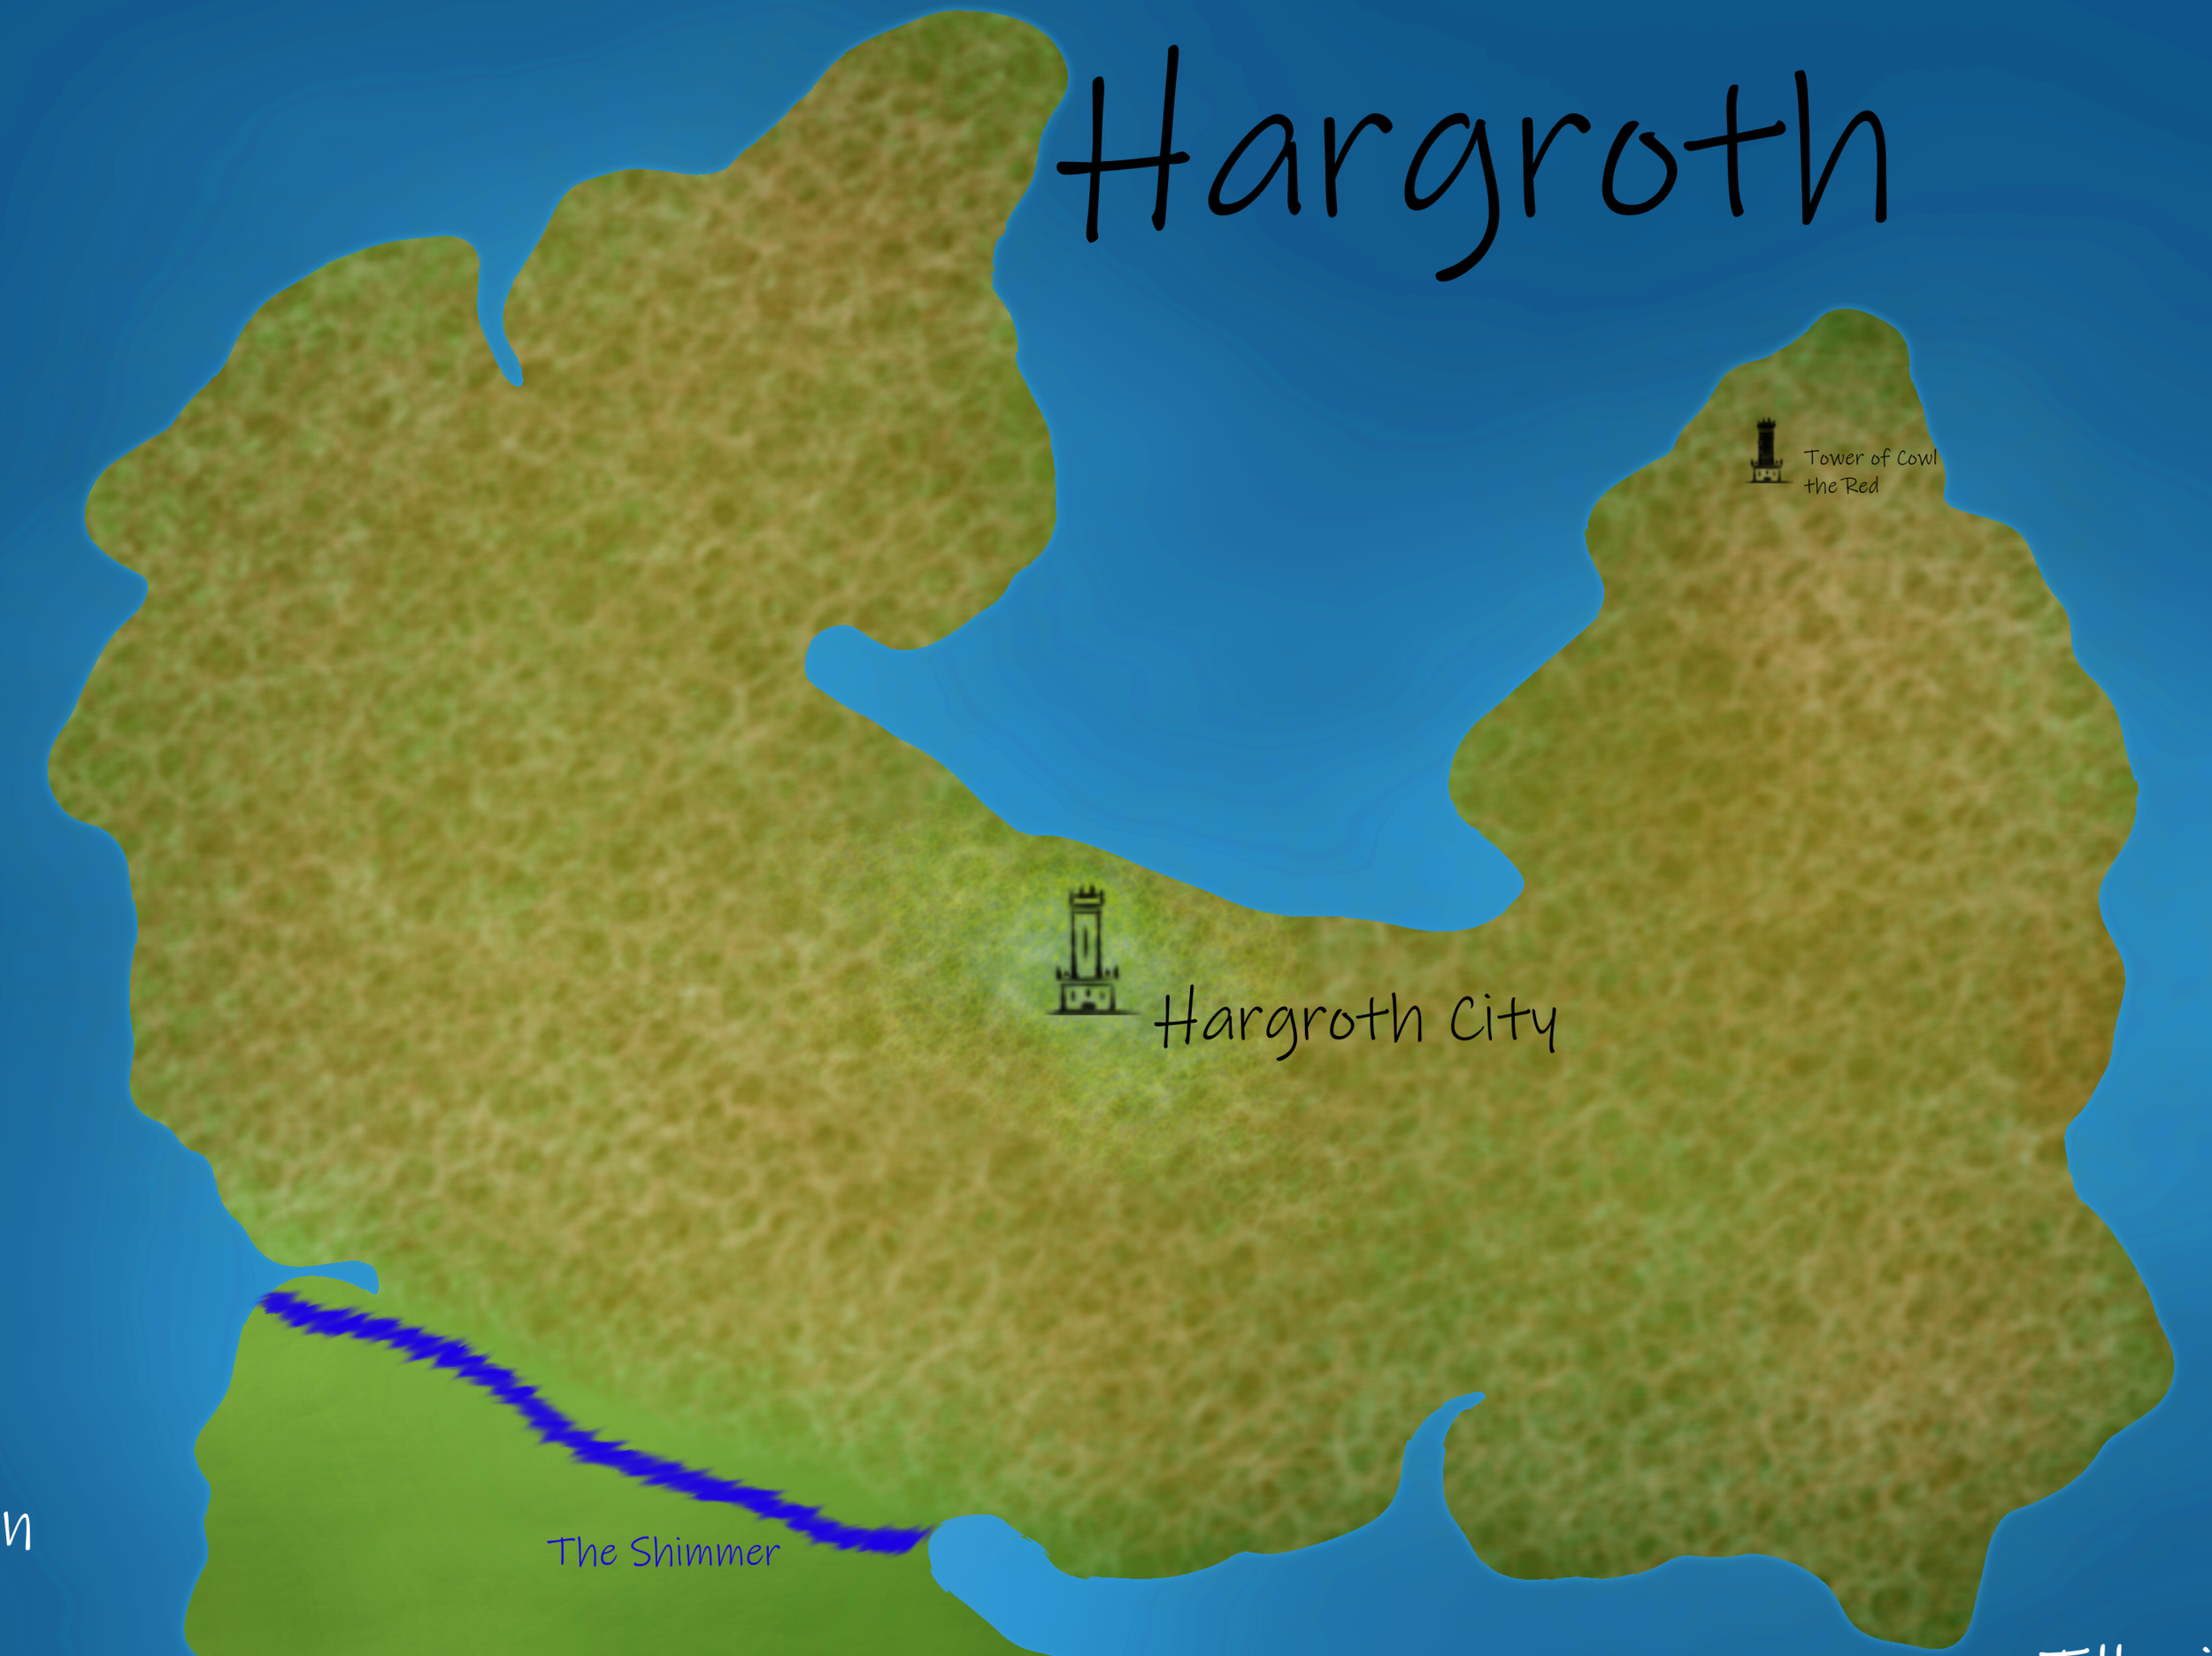 Facts about Hargroth!